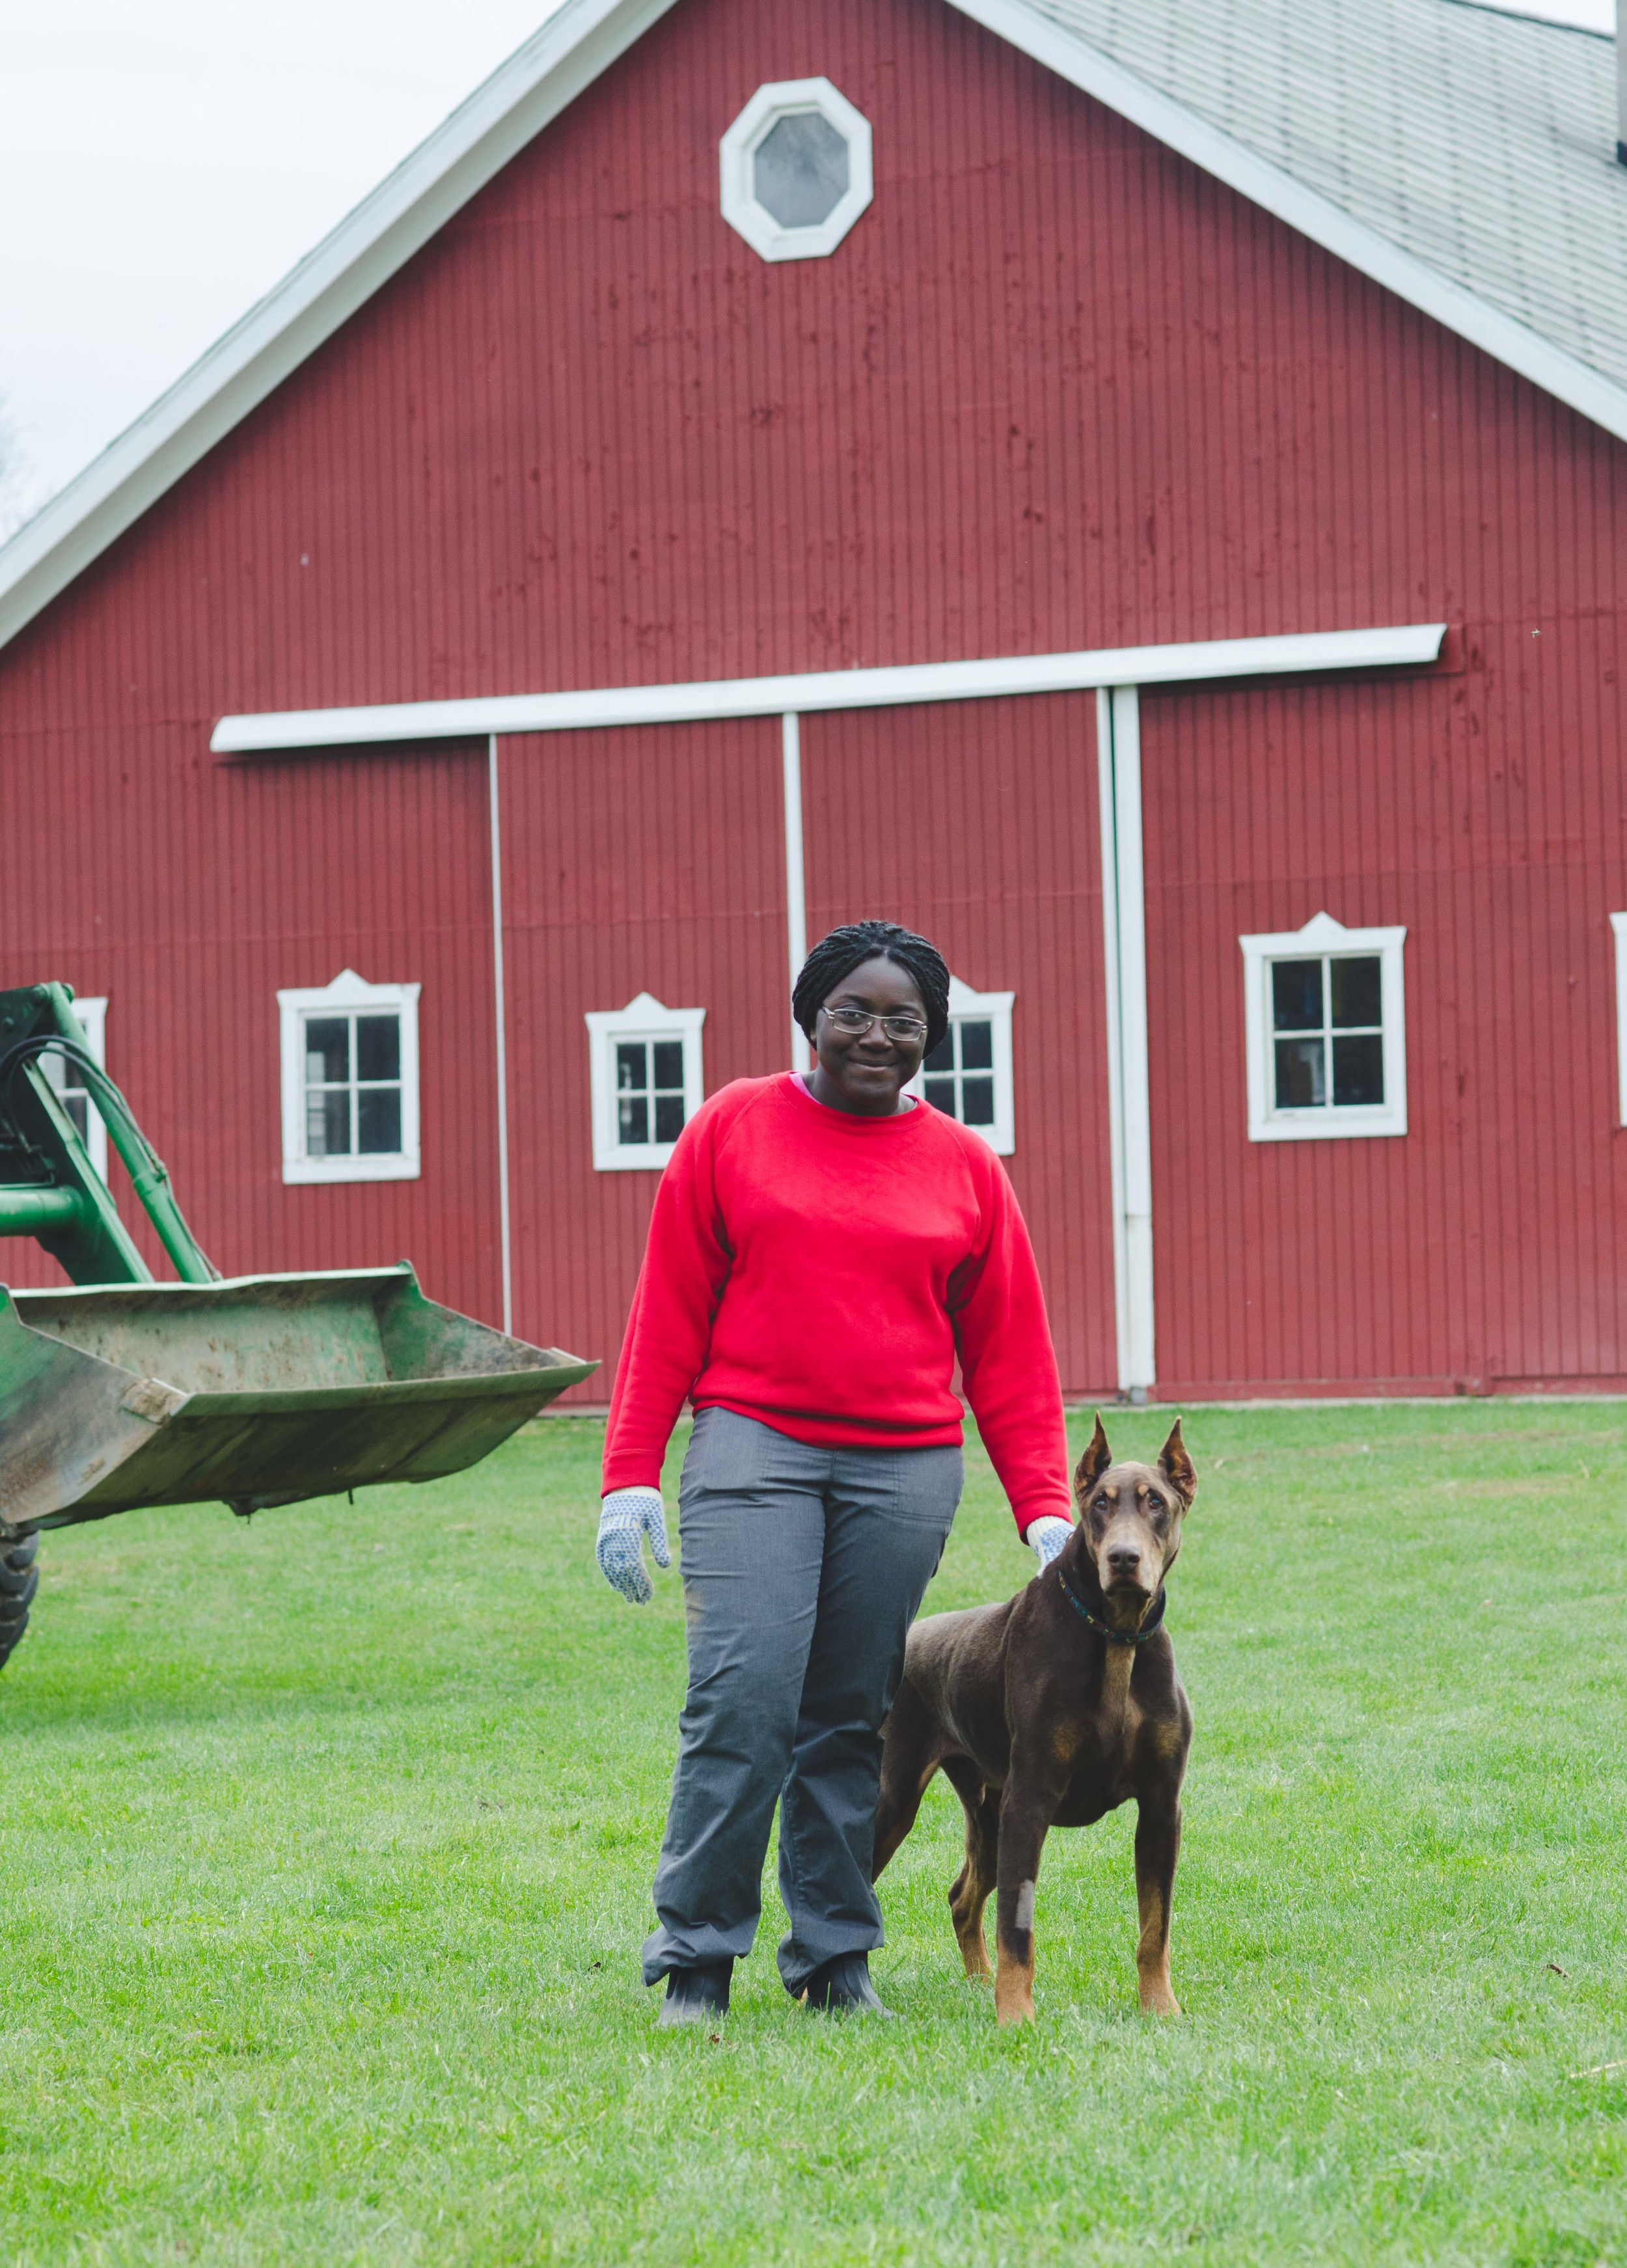 This photo could not get any more Midwest: tractor, red barn, farm dog, work gloves, and muck boots